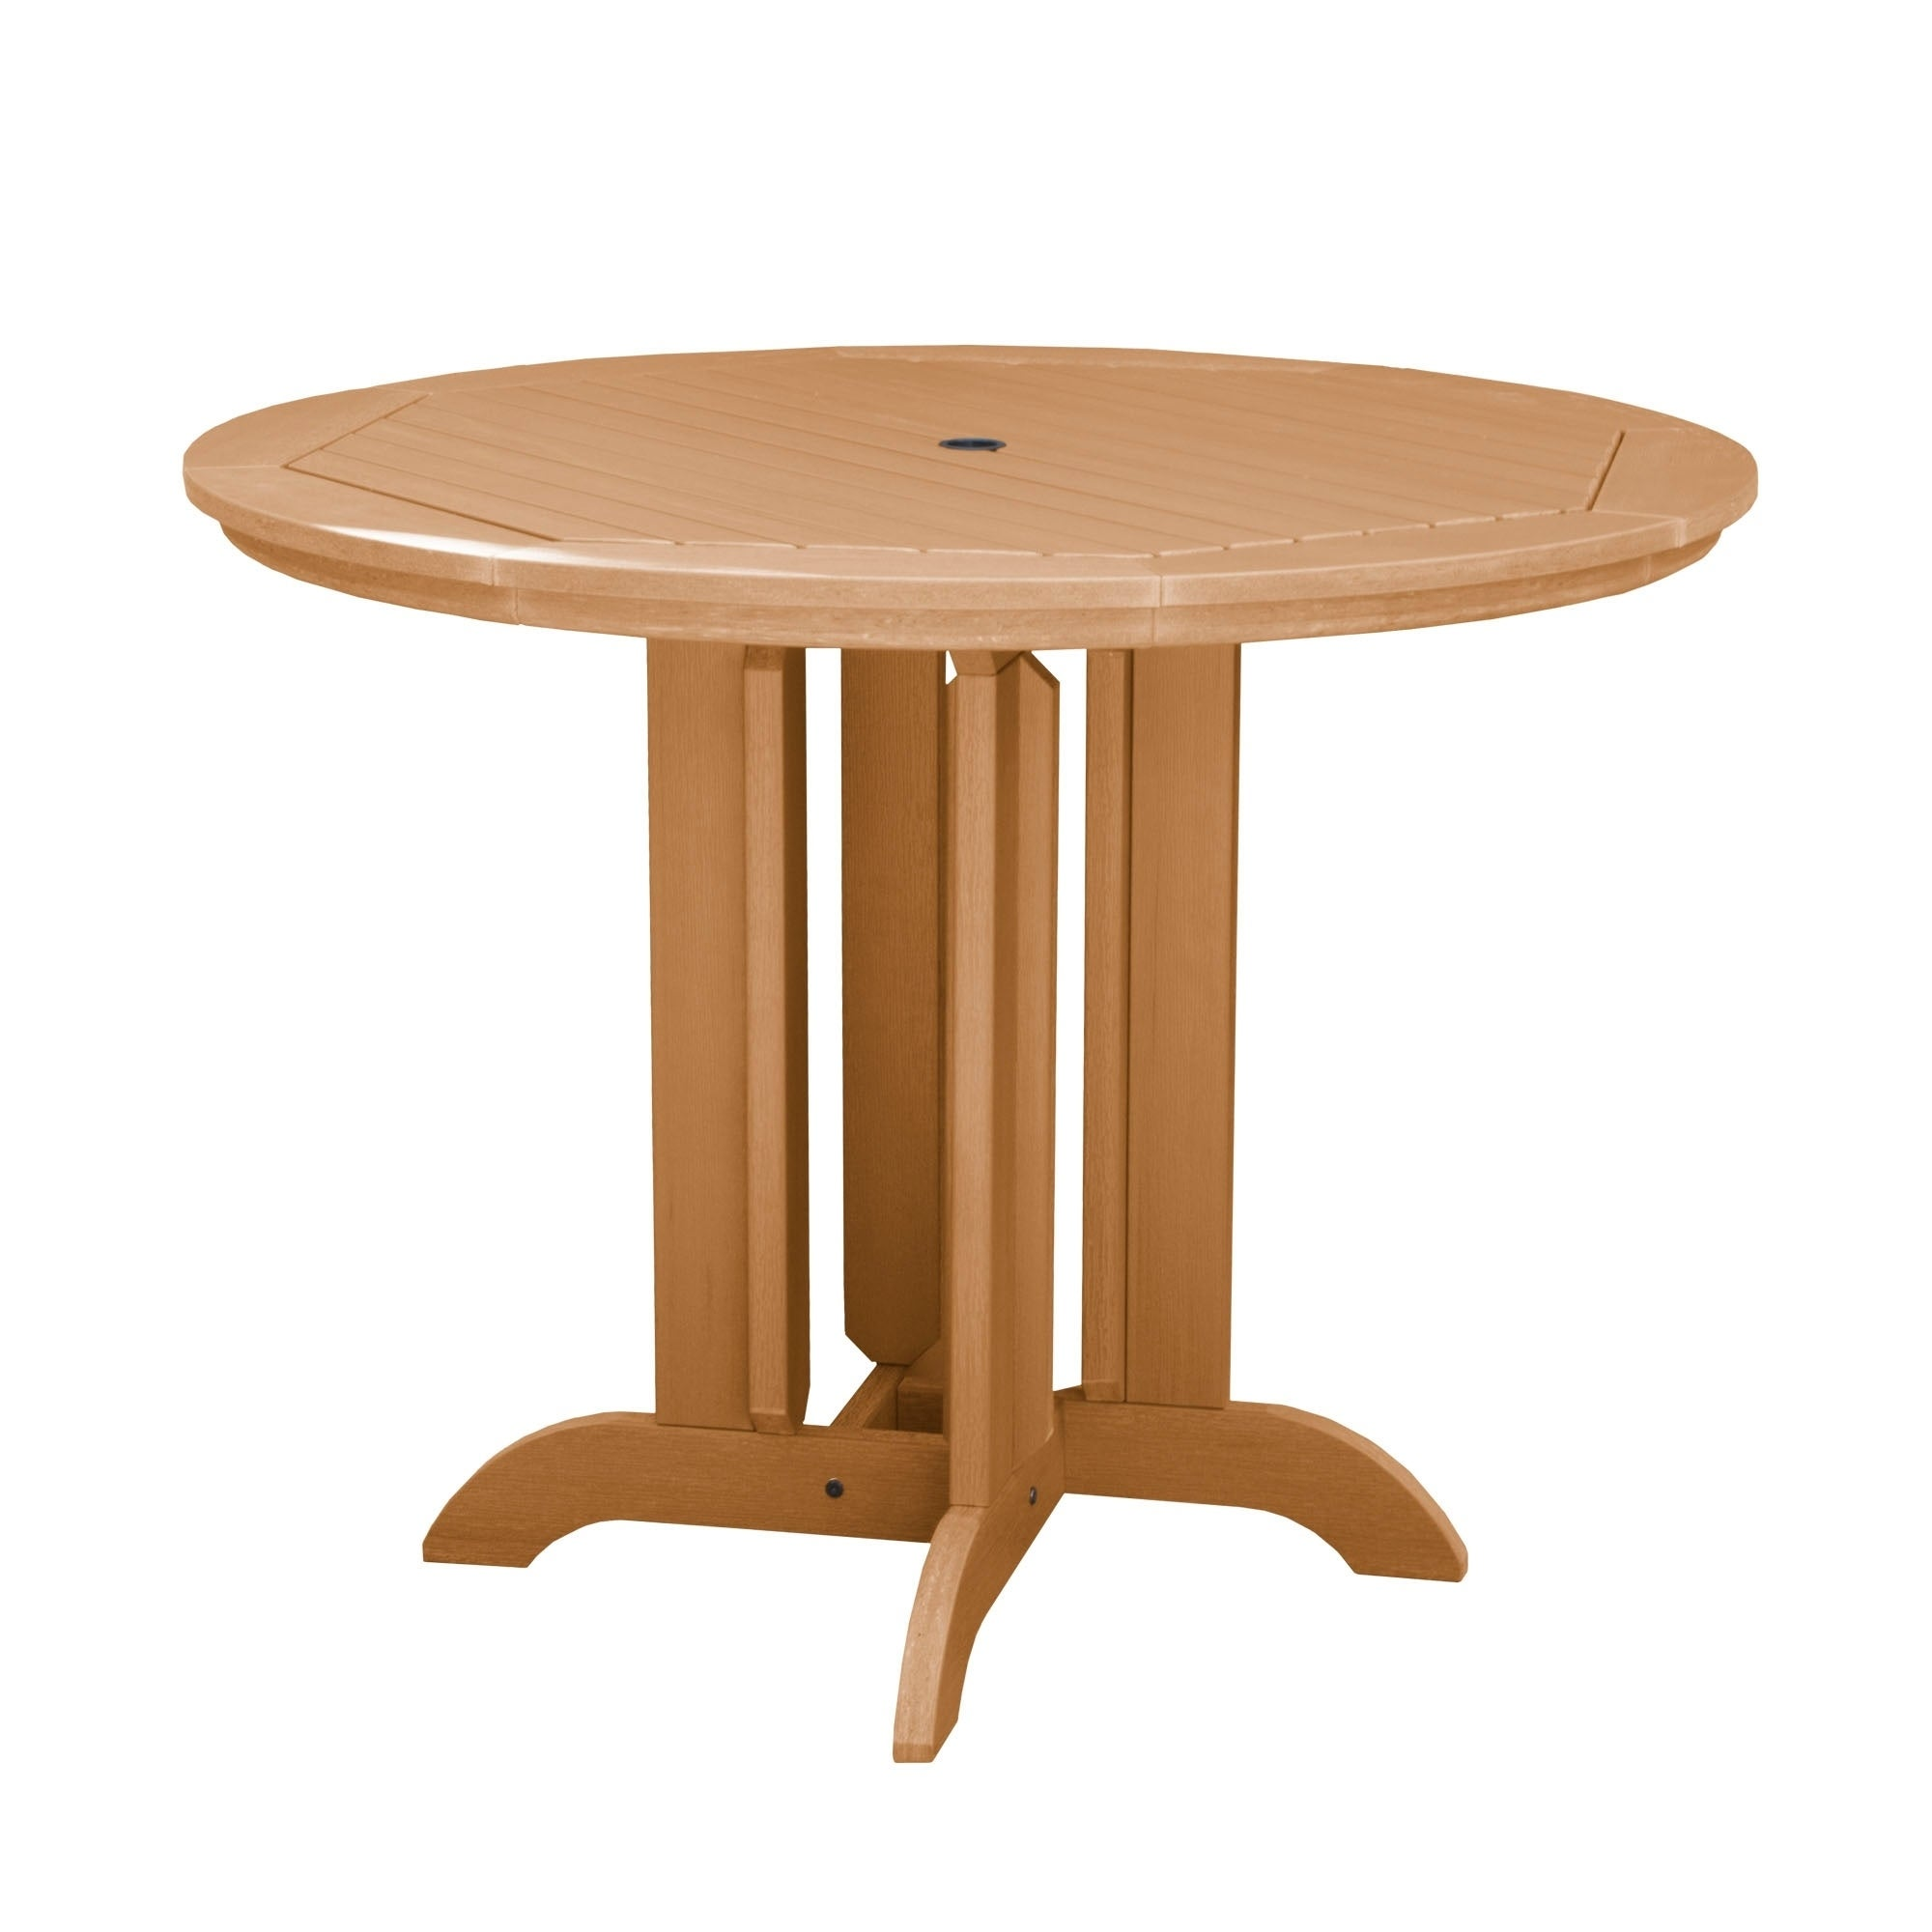 762f1ab02b79db Shop 48-inch Round Counter-Height Dining Table - Free Shipping Today -  Overstock - 11889505